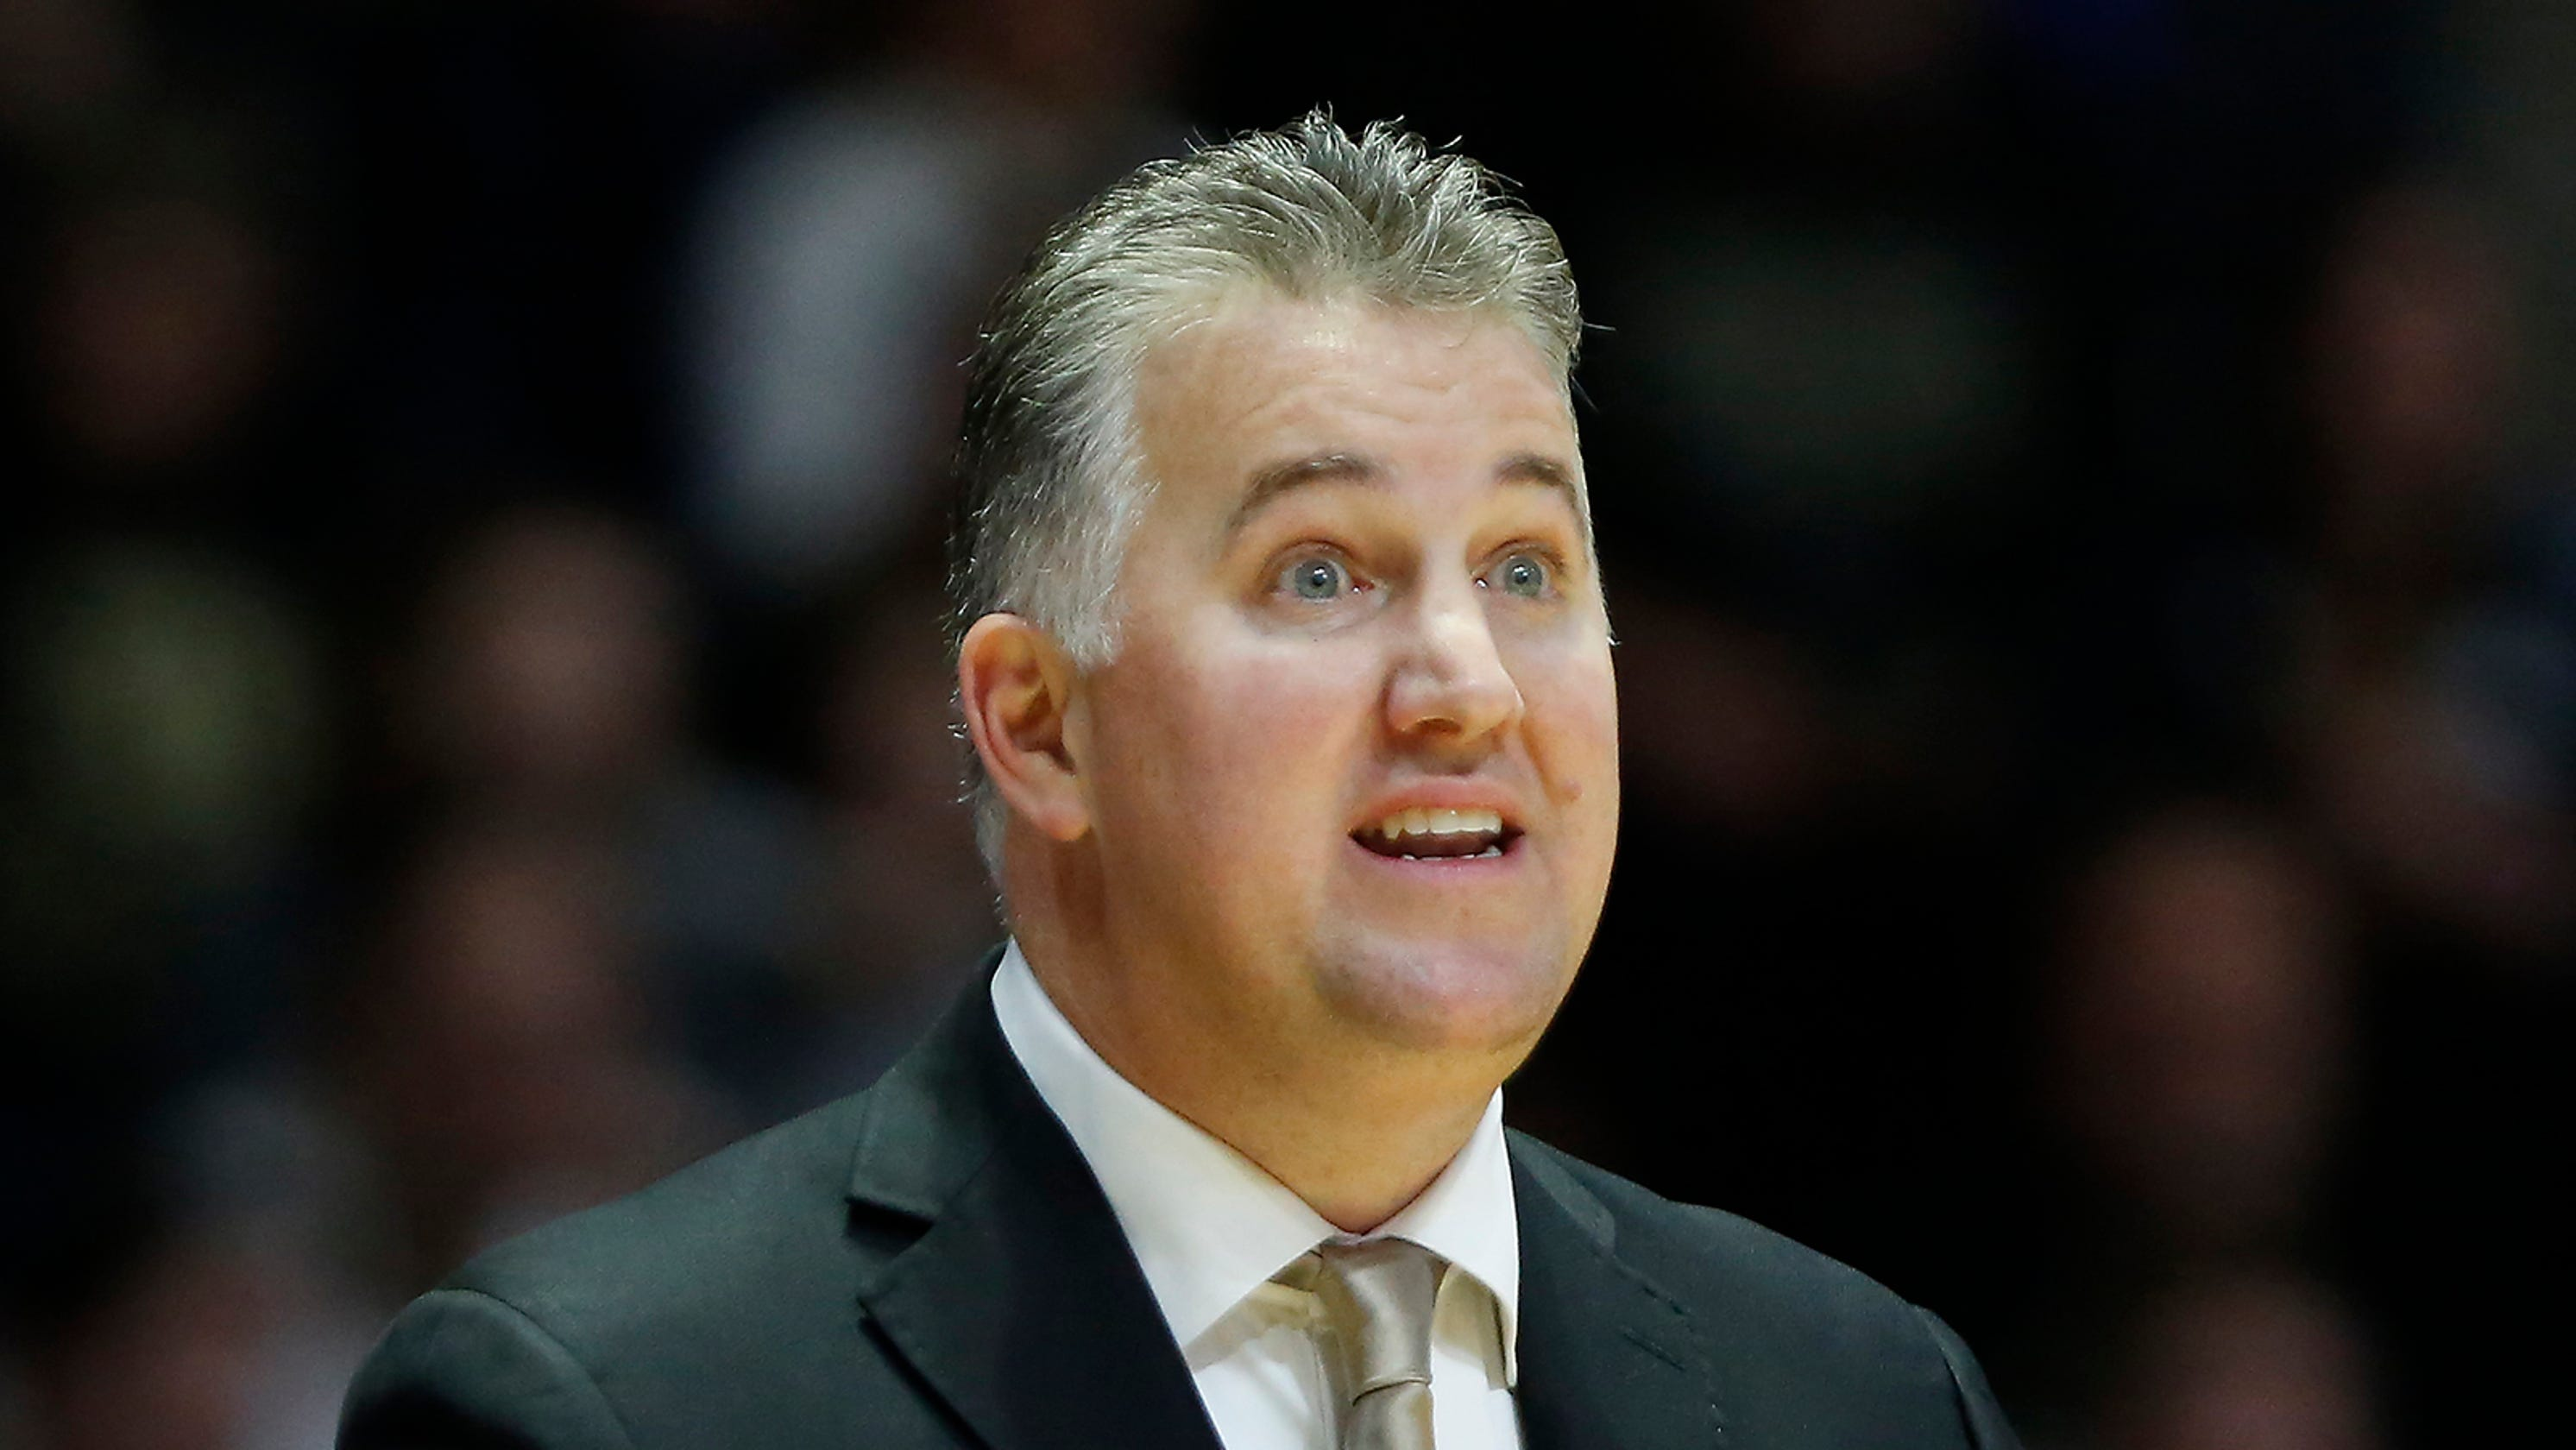 Purdue 2020 Calendar Matt Painter encouraged by Purdue's 2020 recruiting momentum